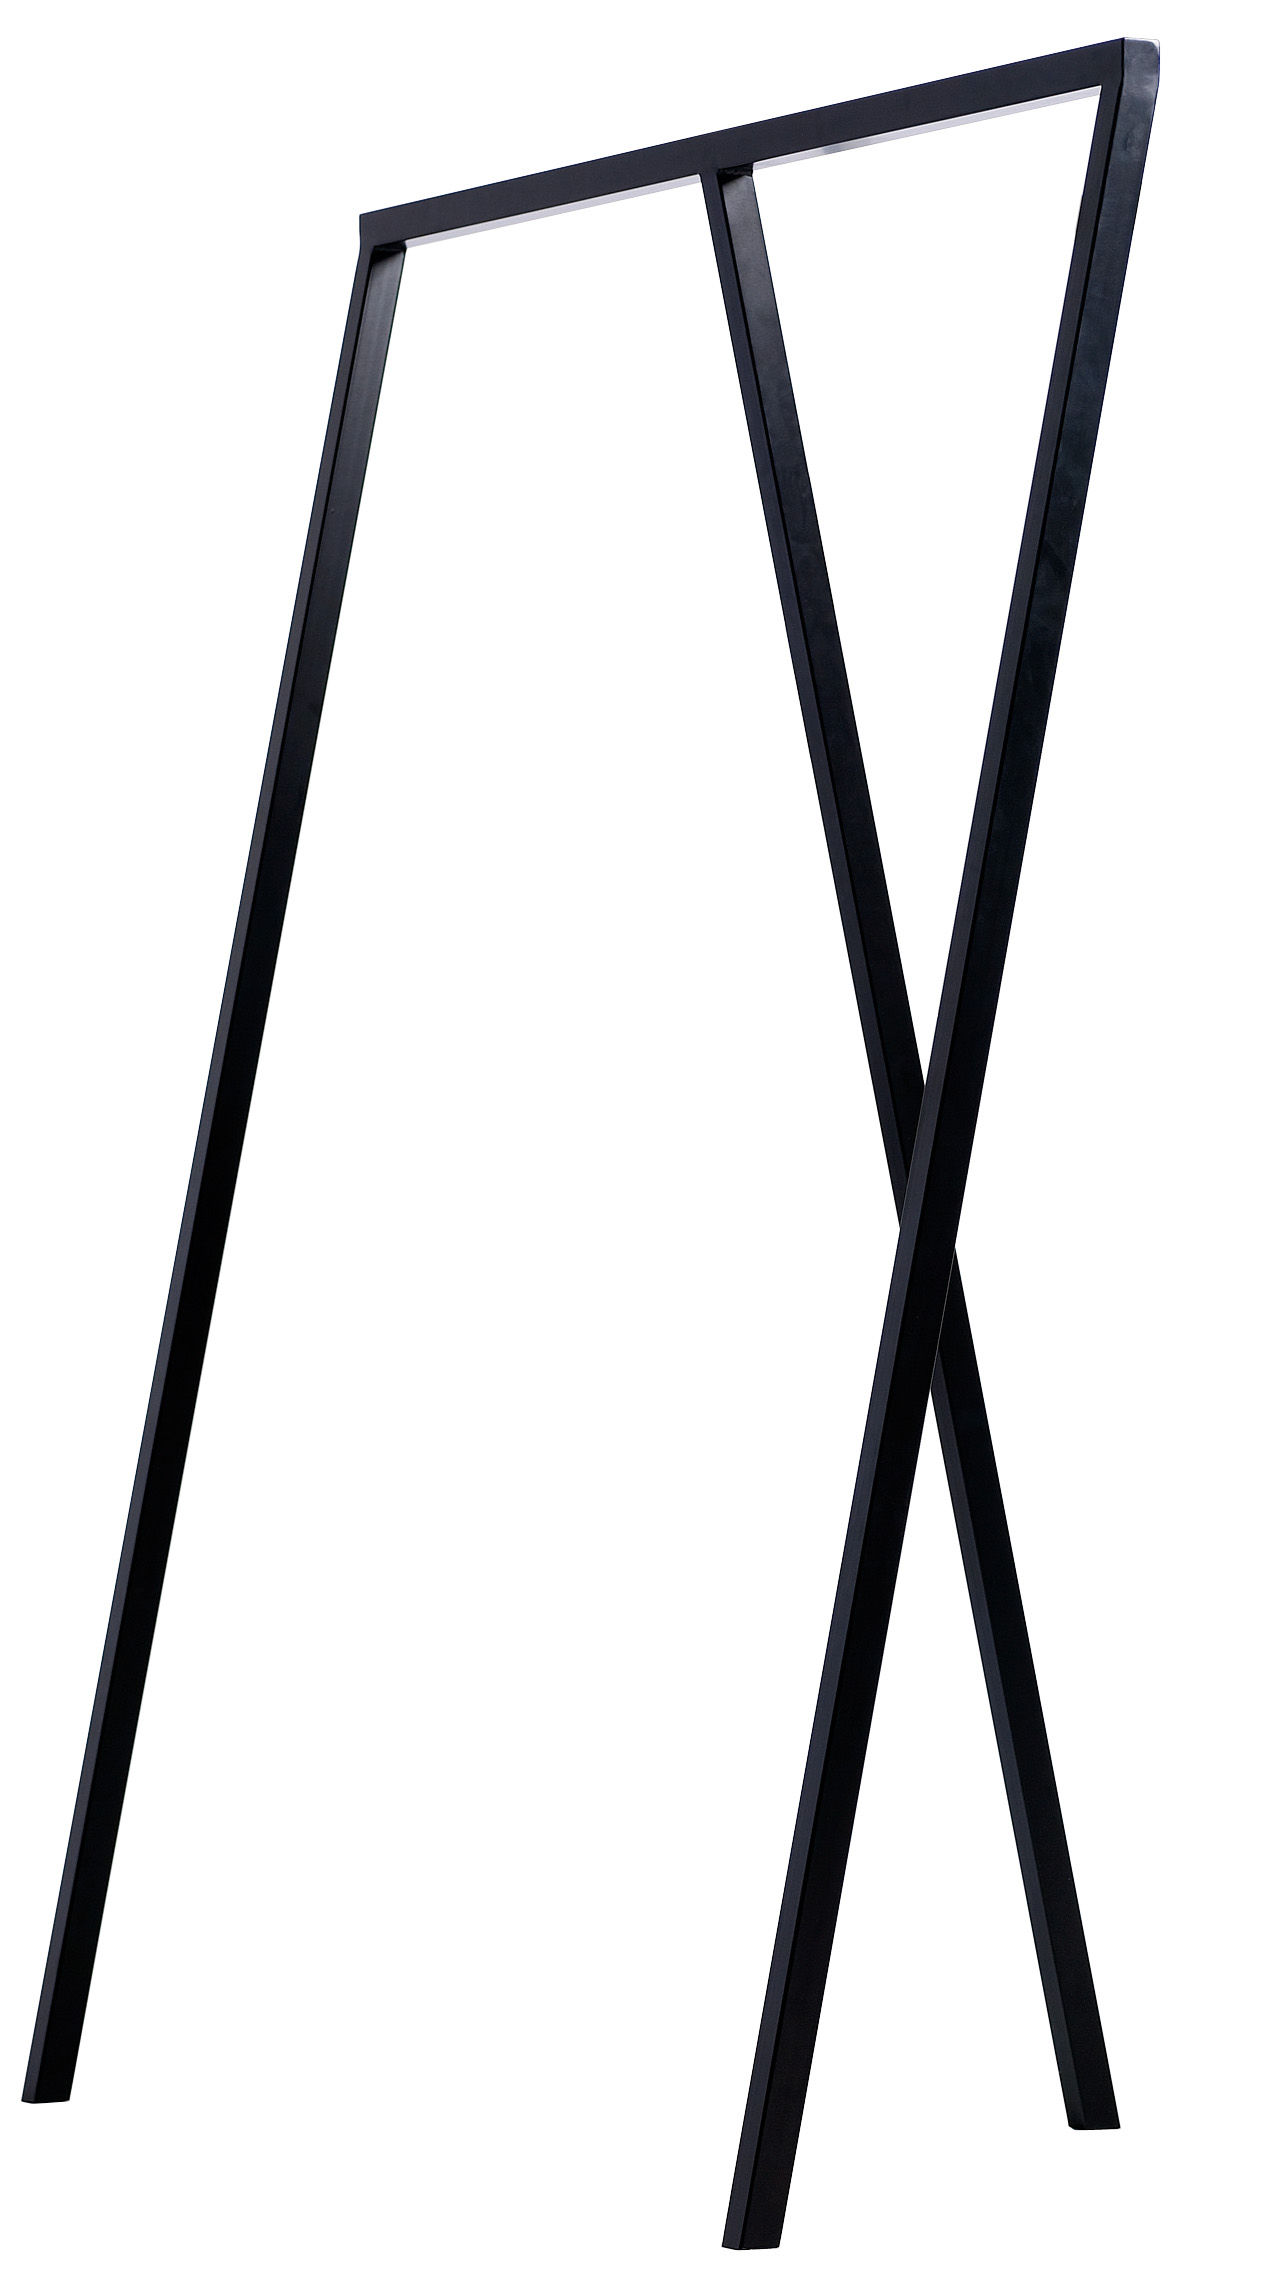 Furniture - Coat Racks & Pegs - Loop Rack - L 130 cm by Hay - Black - Lacquered steel